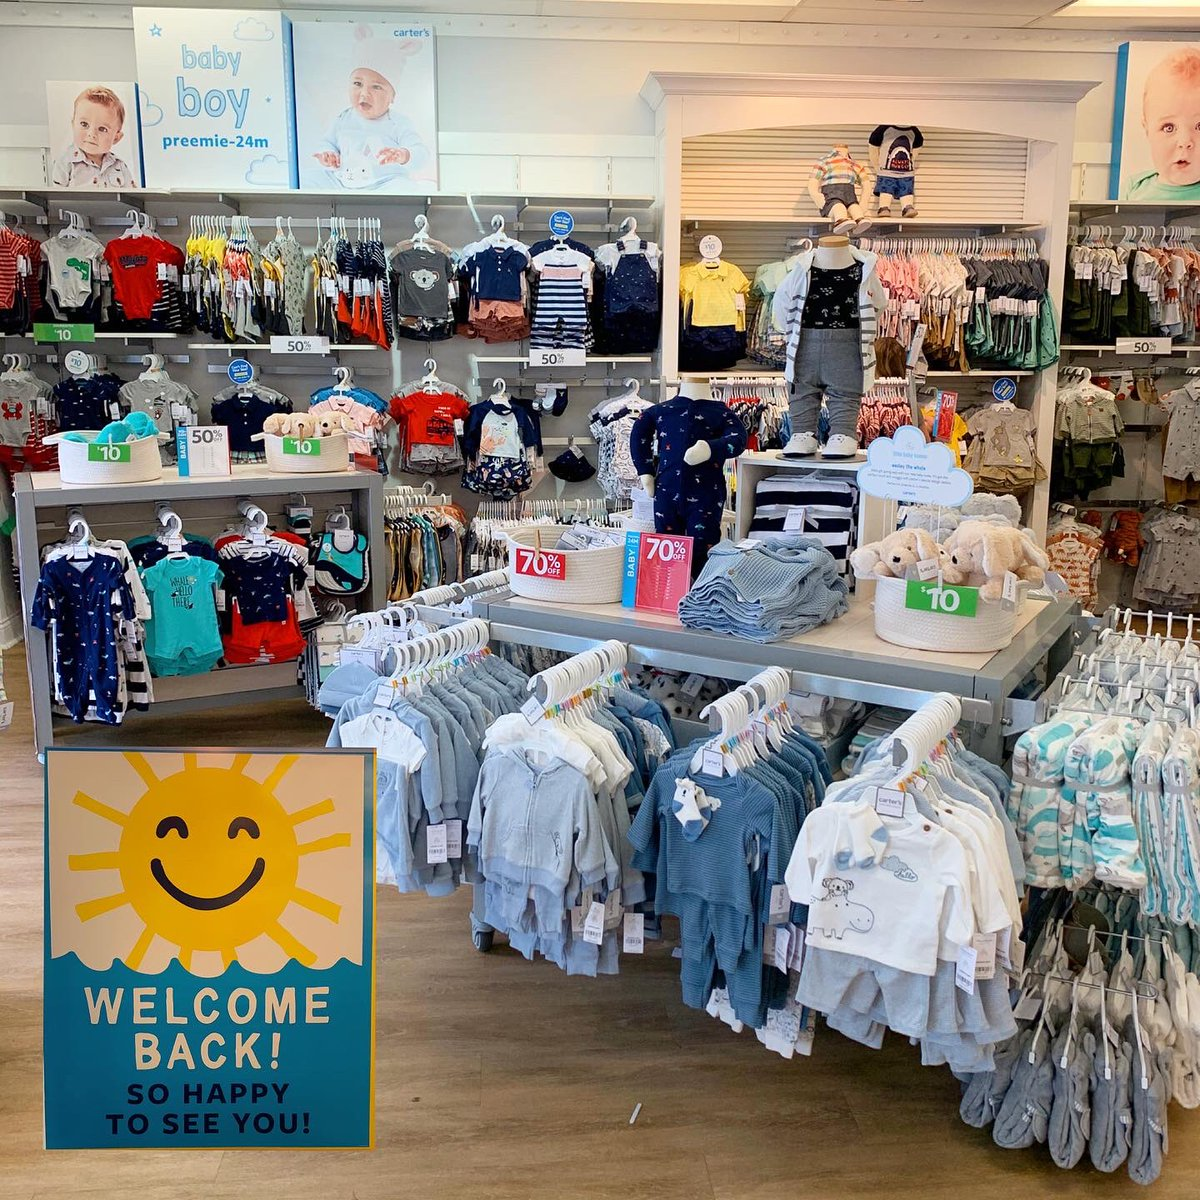 EASY BREEZY + SUPER CUTE, FUN IN THE SUN STYLES ALL ON SALE NOW AT CARTER'S & OSHKOSH B'GOSH!  #gettysburgoutlets #gettysburg #carters #oshkosh #oshkoshbgosh #kidsfashion #babyfashion #outlets #outletshopping #shopping #salepic.twitter.com/1Q9FbbhmvN